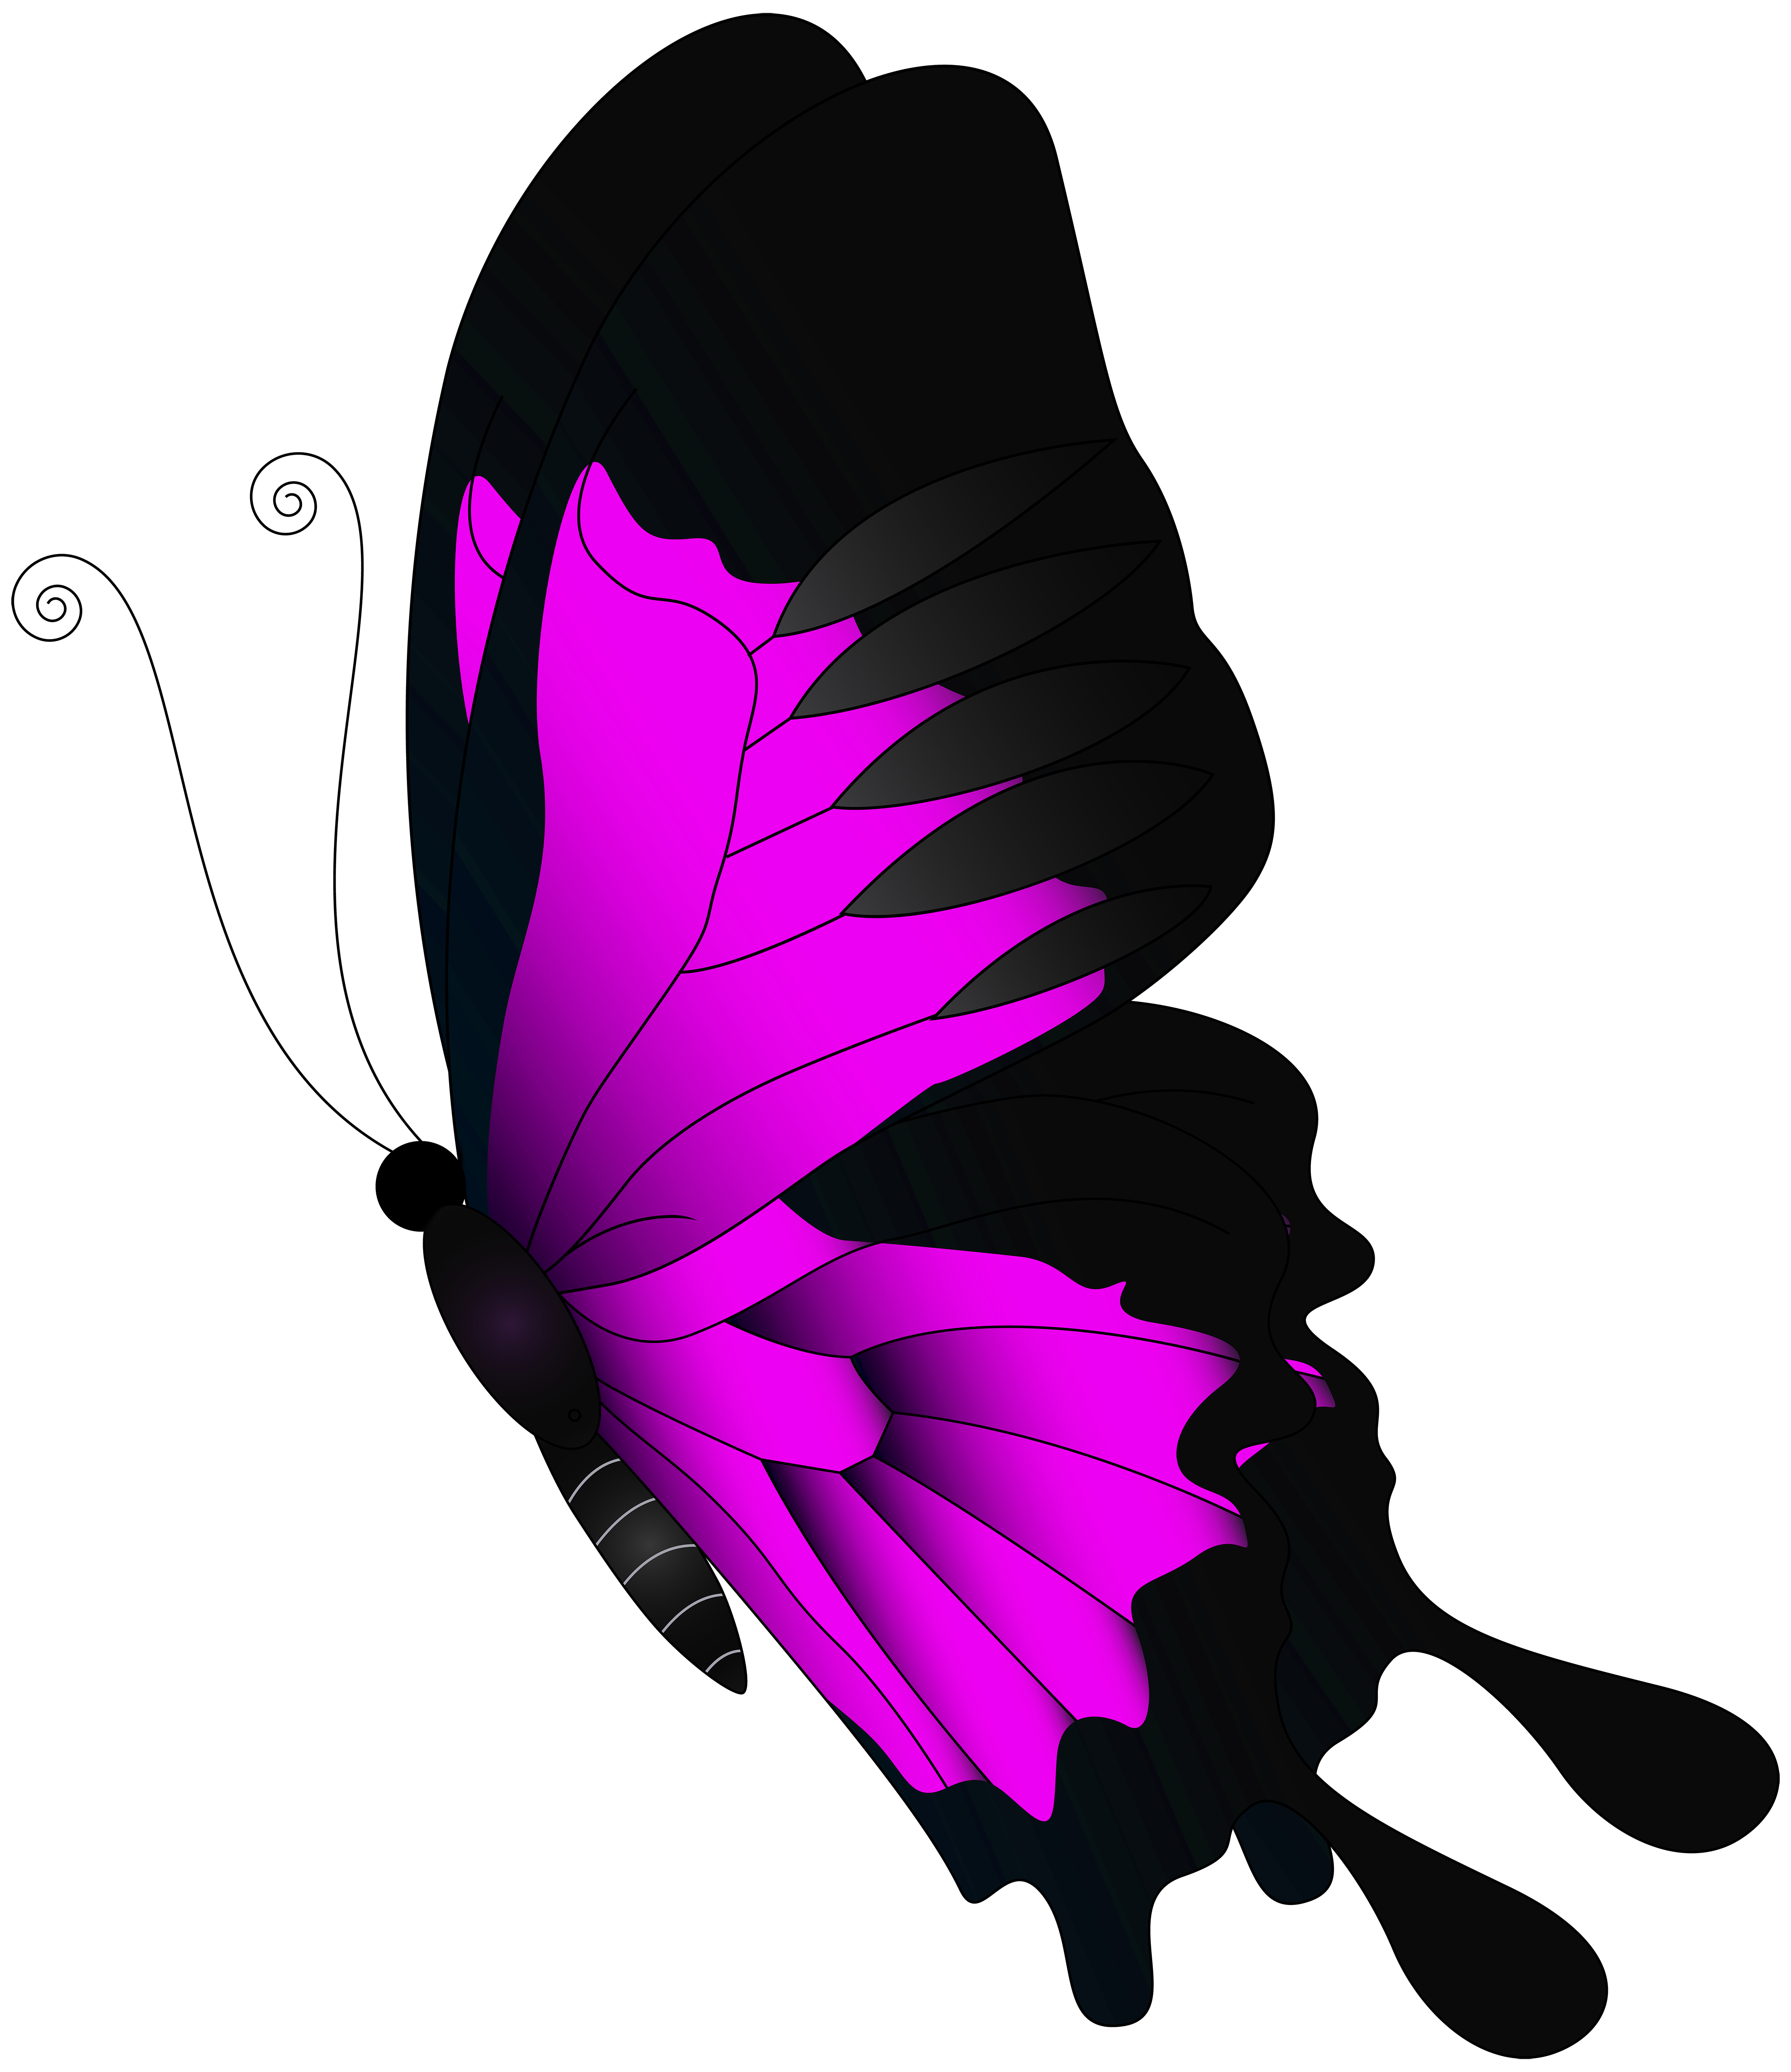 Flying butterfly clipart image freeuse stock Pink Flying Butterfly PNG Clip Art | Gallery Yopriceville - High ... freeuse stock